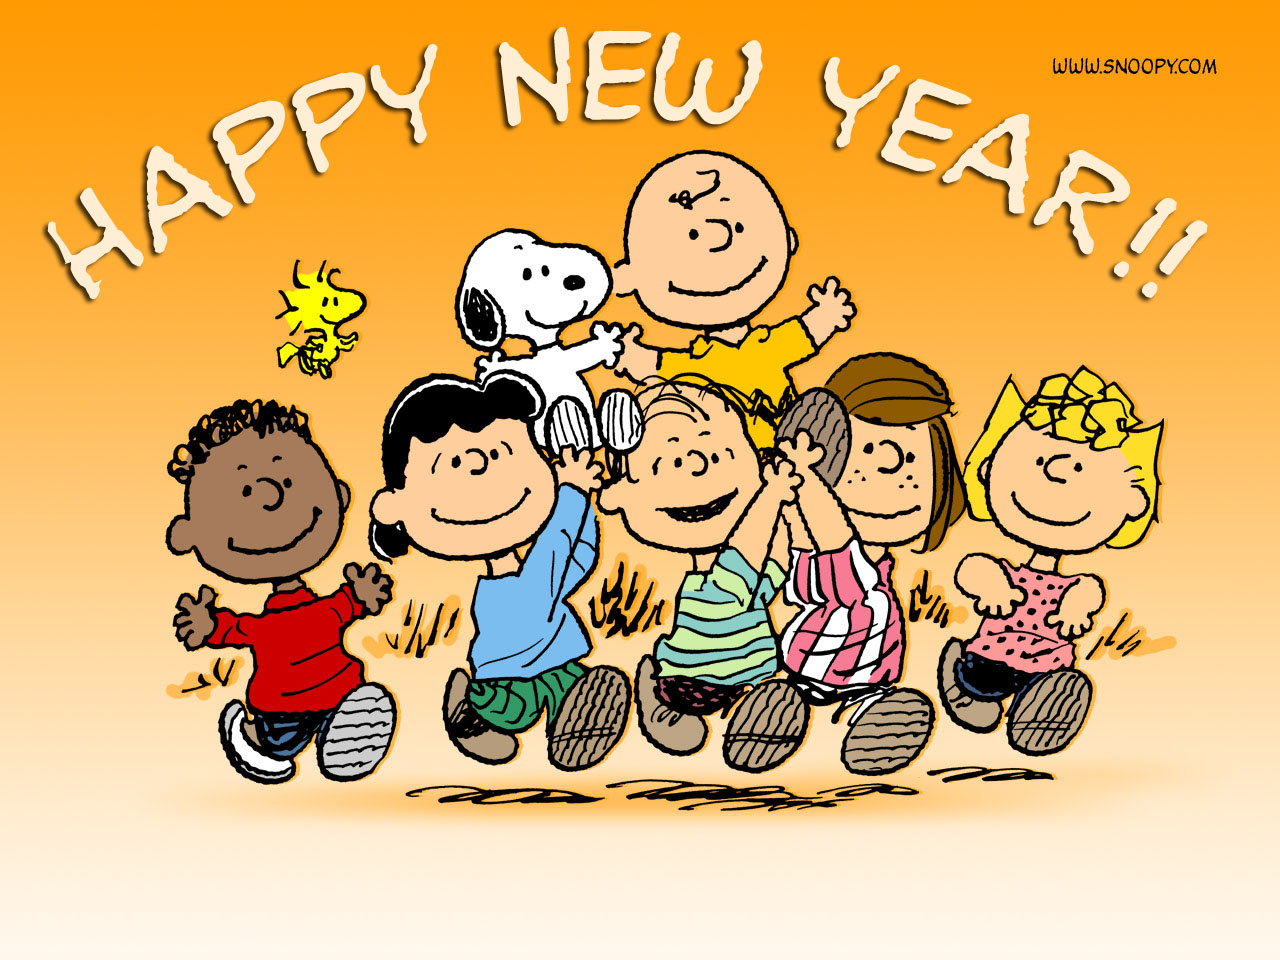 new year sms 2012 free sms sms message love sms funny sms sms text . 1280 x 960.Happy New Year Wishes In Hindi Word 140